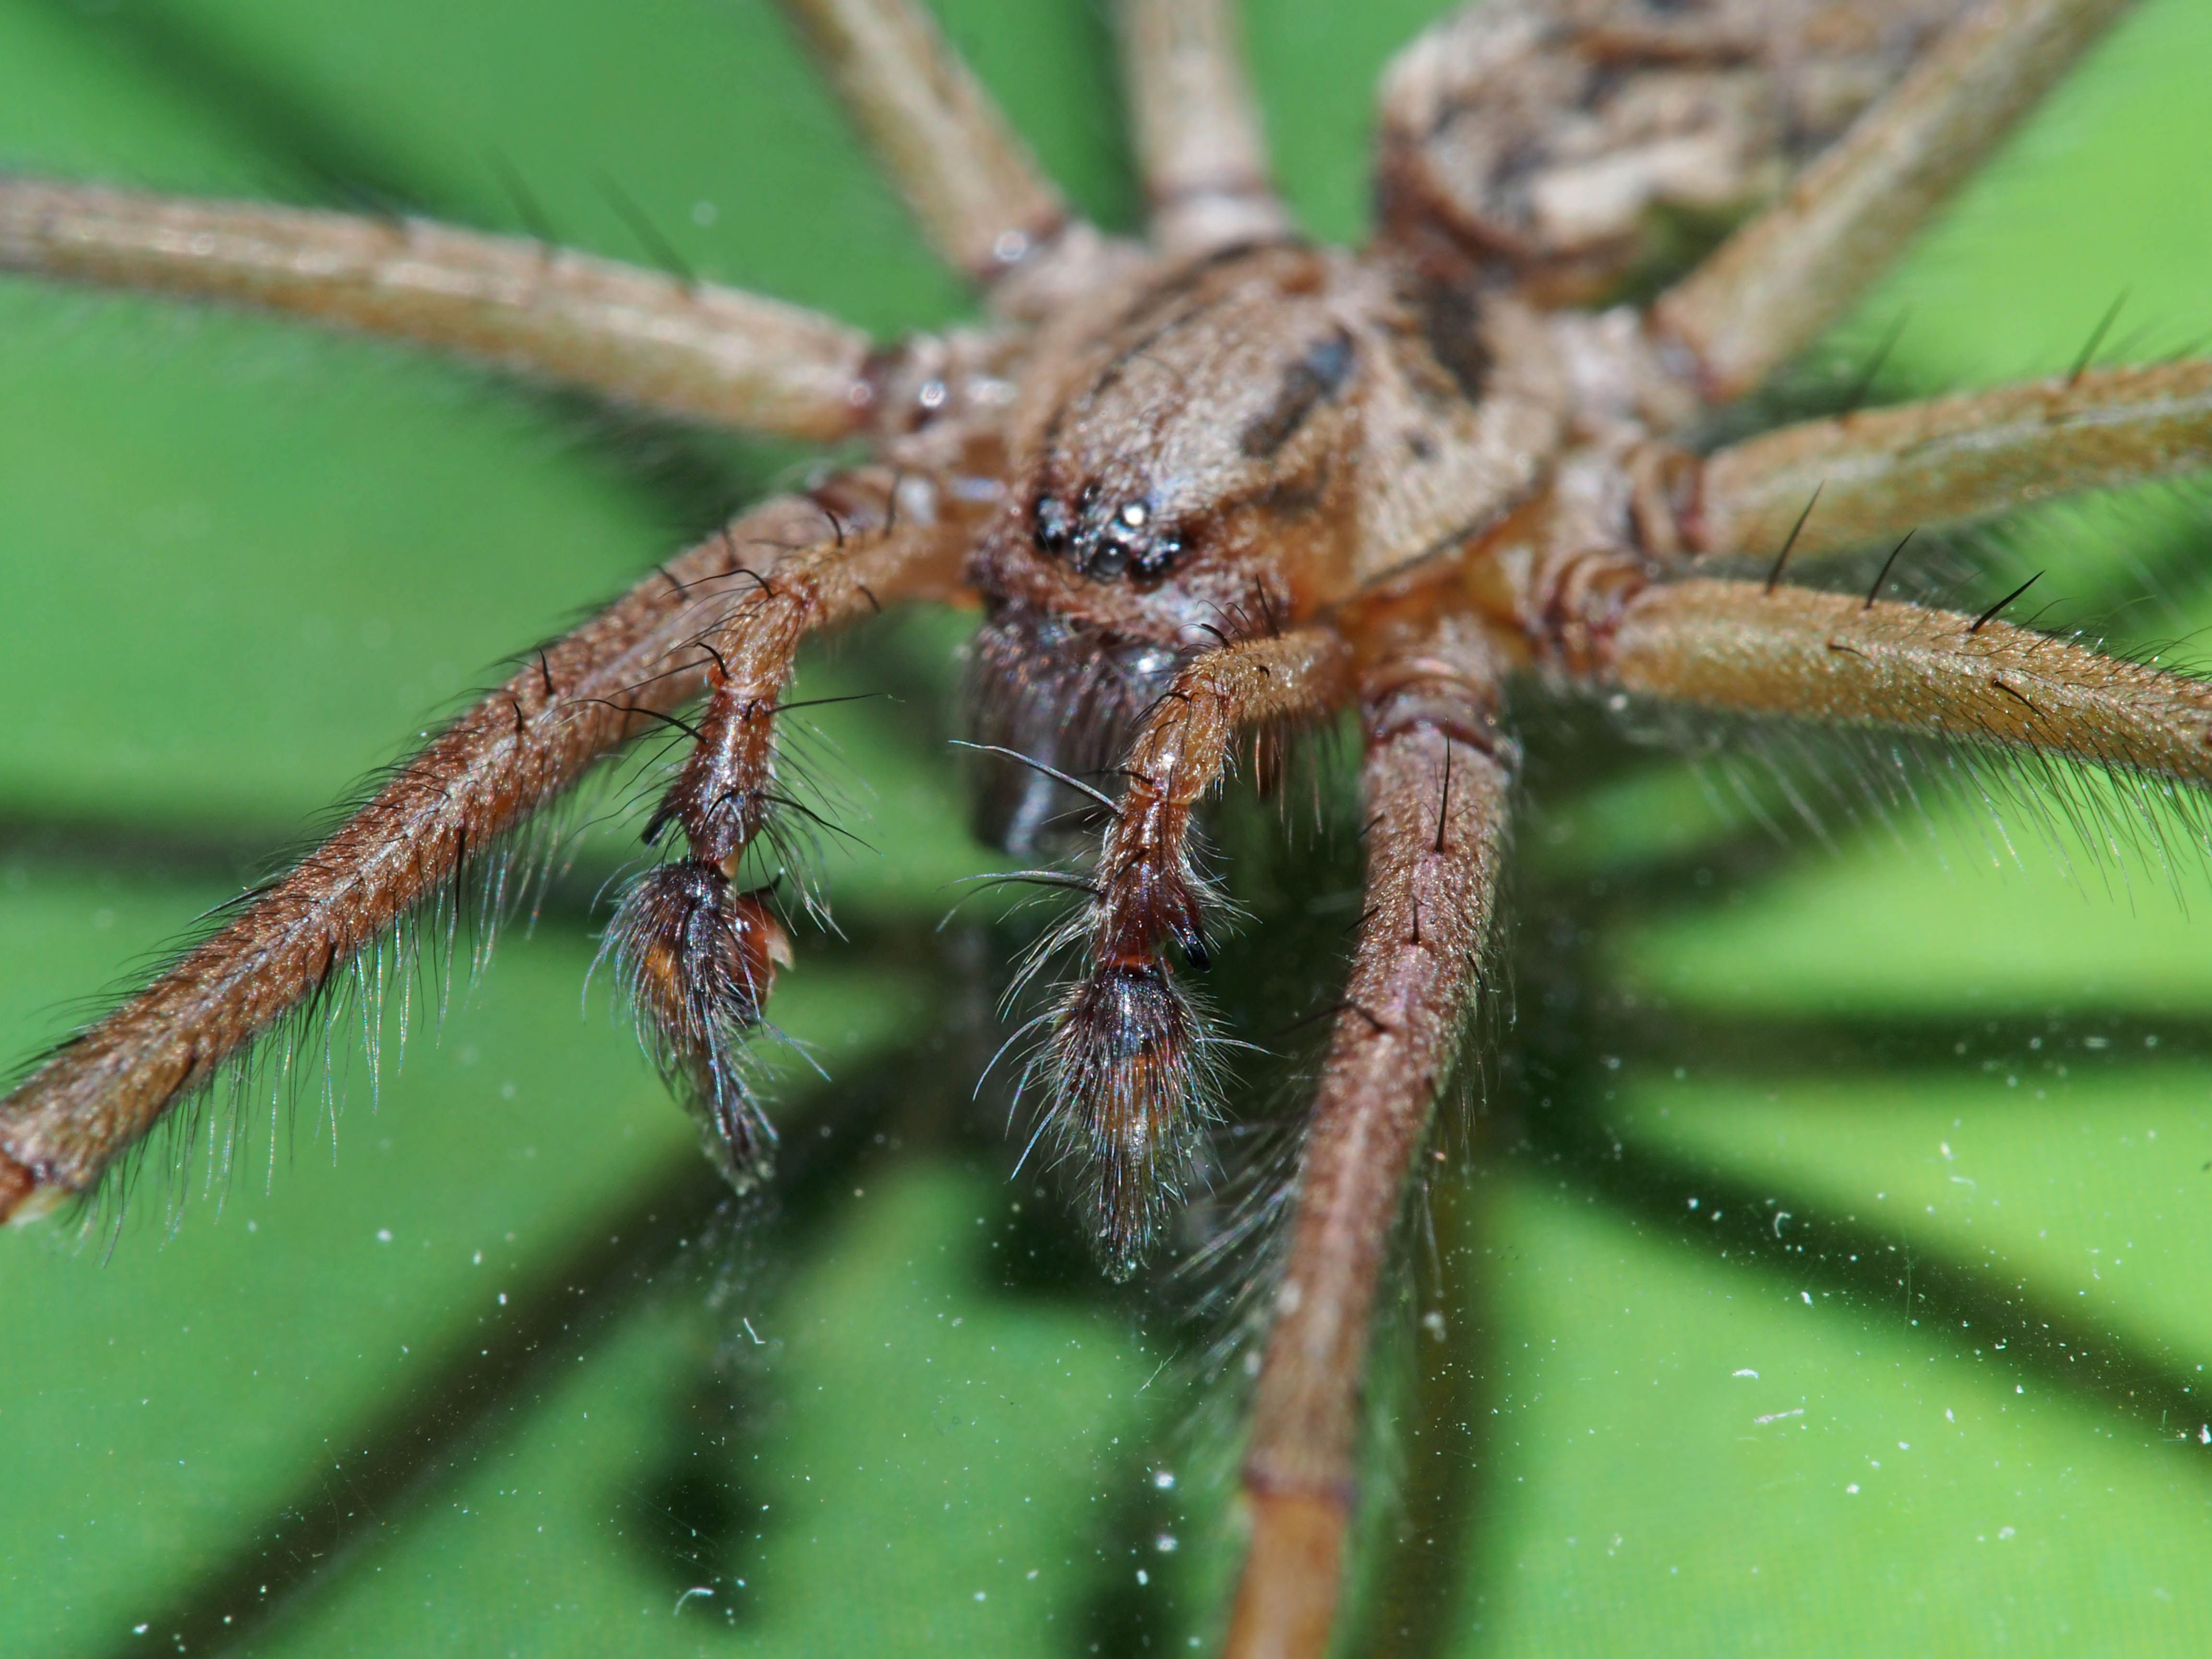 House Spider An Up Close Portrait Of The Head And